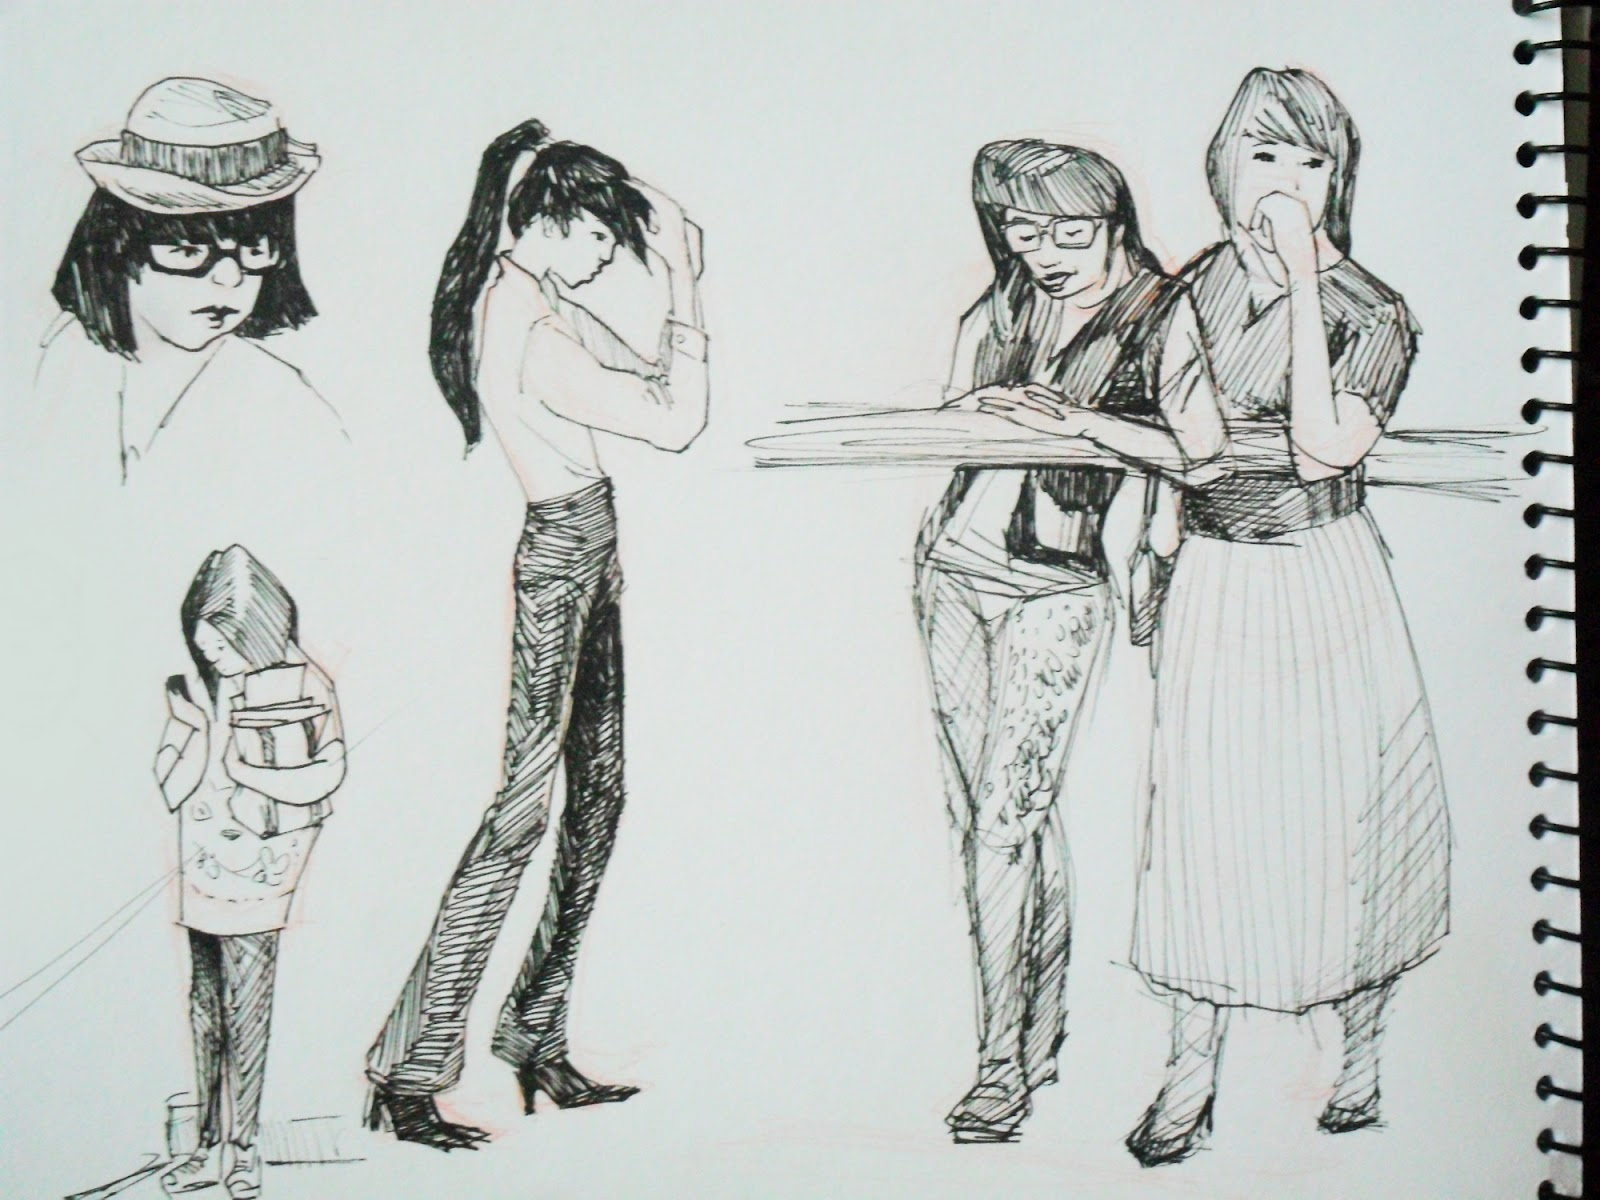 illustrations in the rough: August 2012 #6E645D